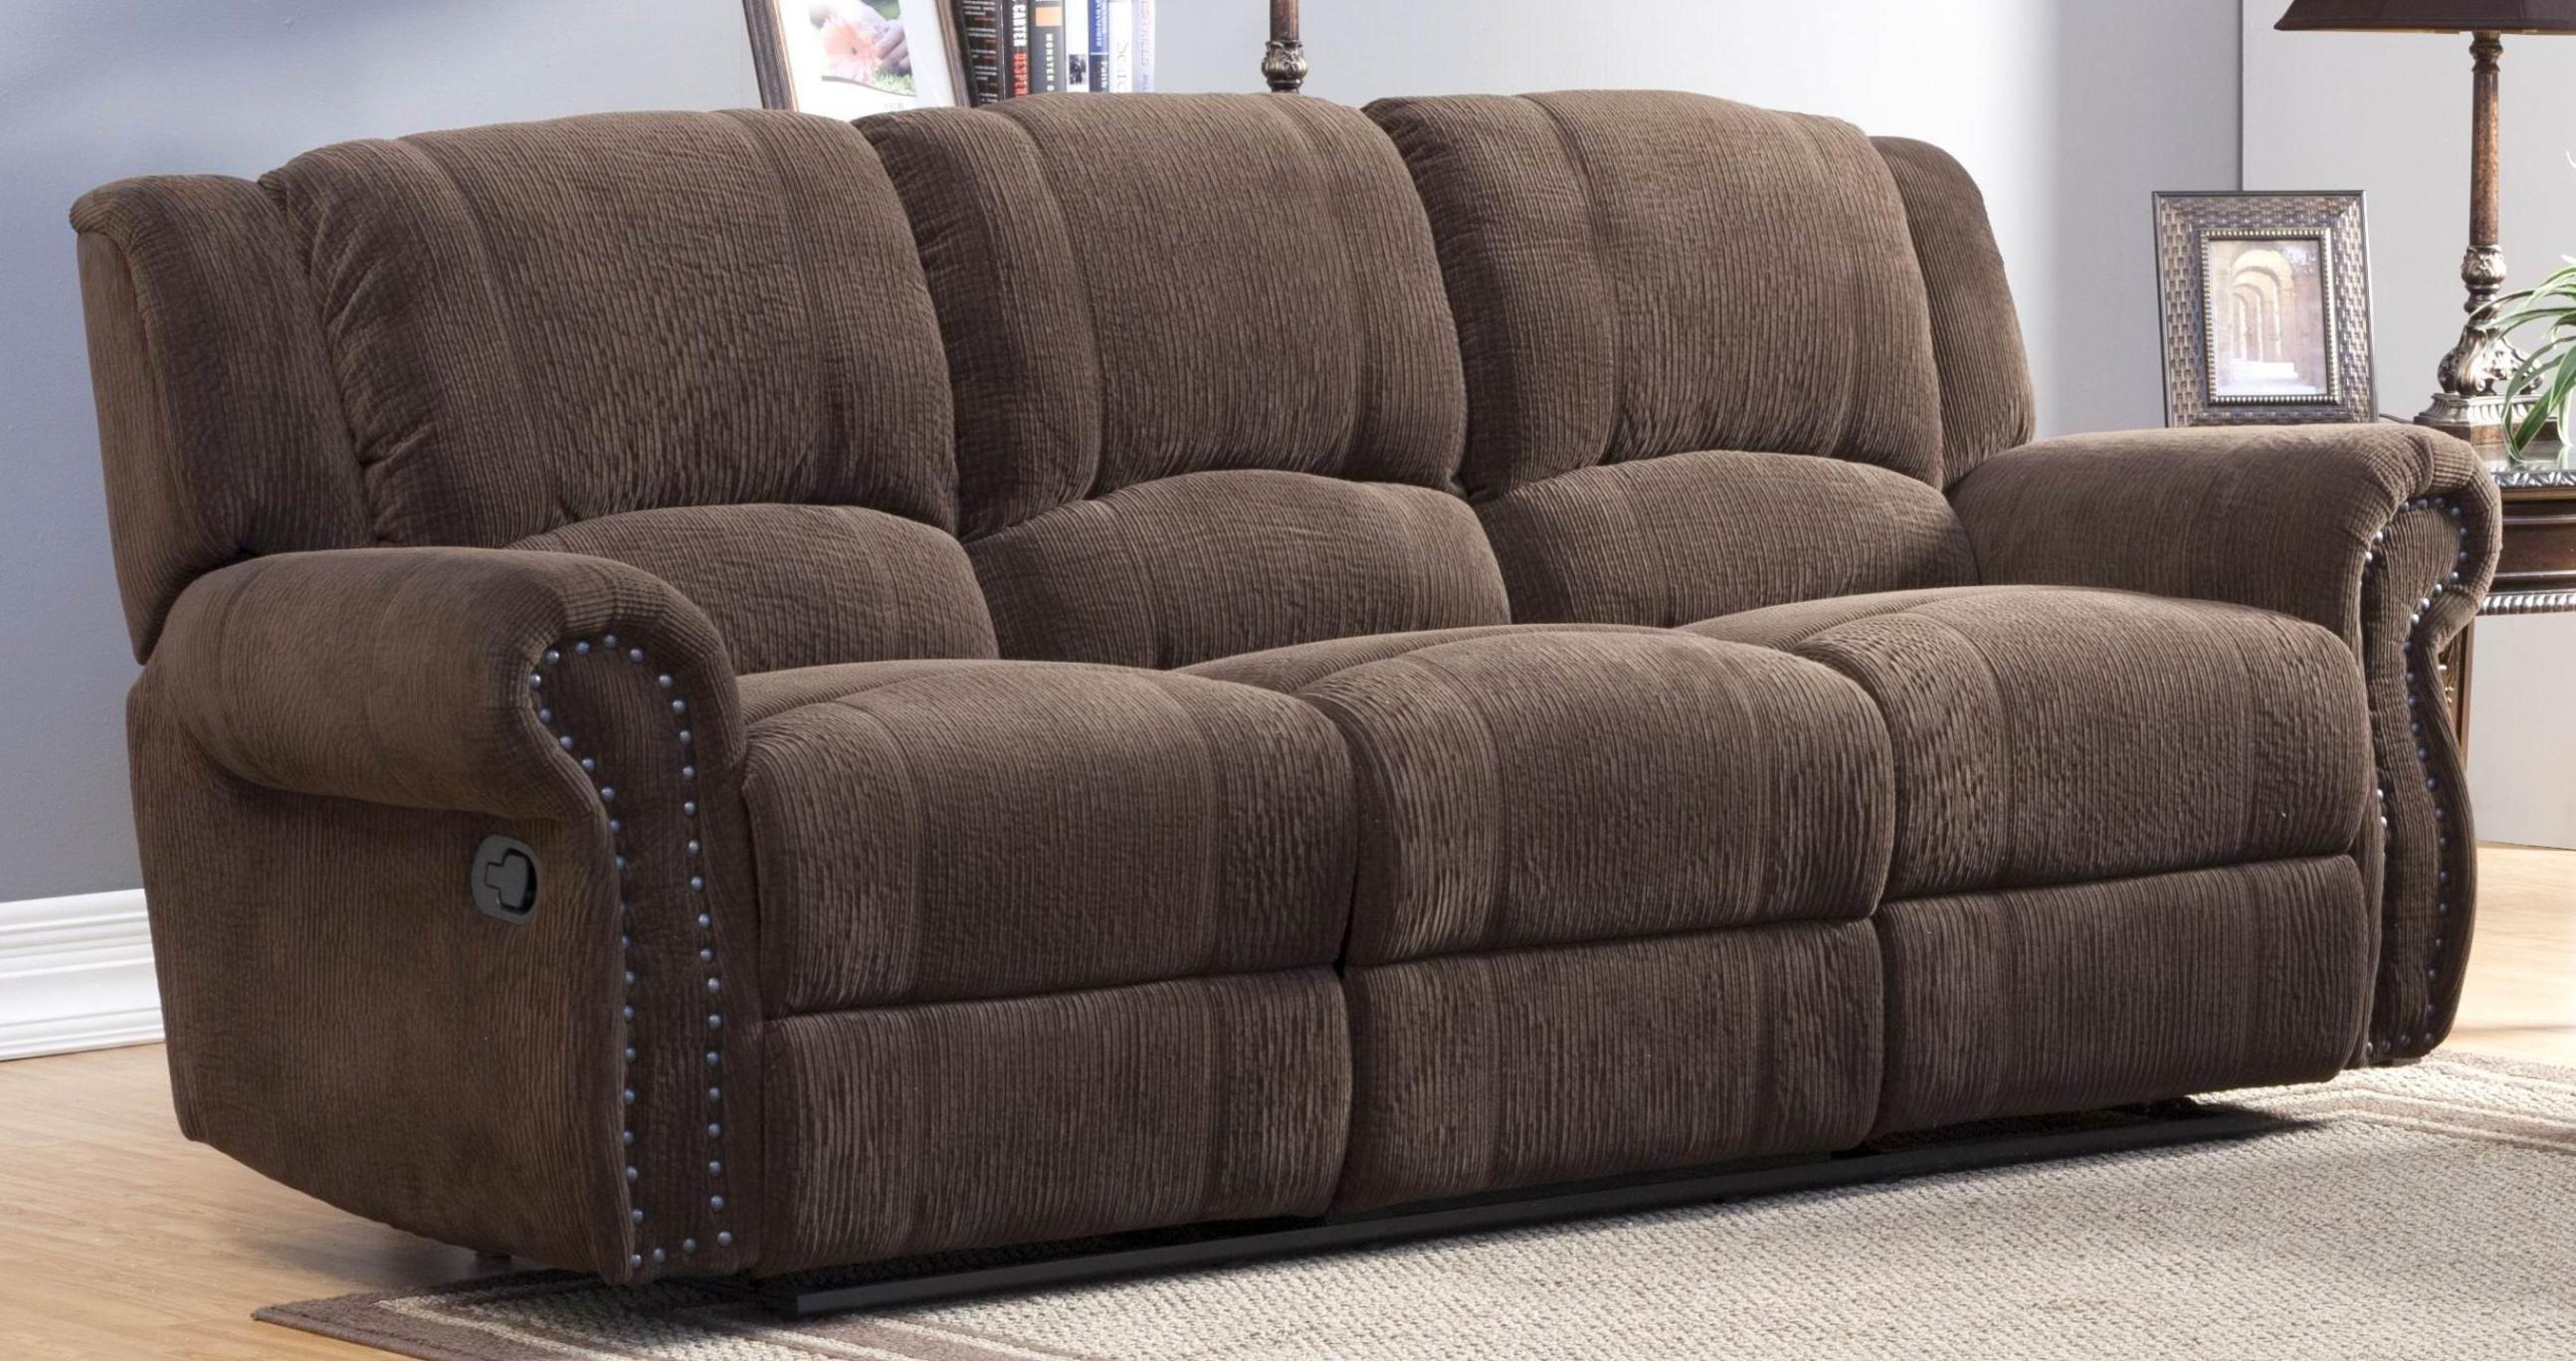 leather sectional set target sofa reclining slipcovers chaise covers couch sleeper recliner loveseat couches boy lazy lounge sofas and slipcover jcpenney furniture accent tables